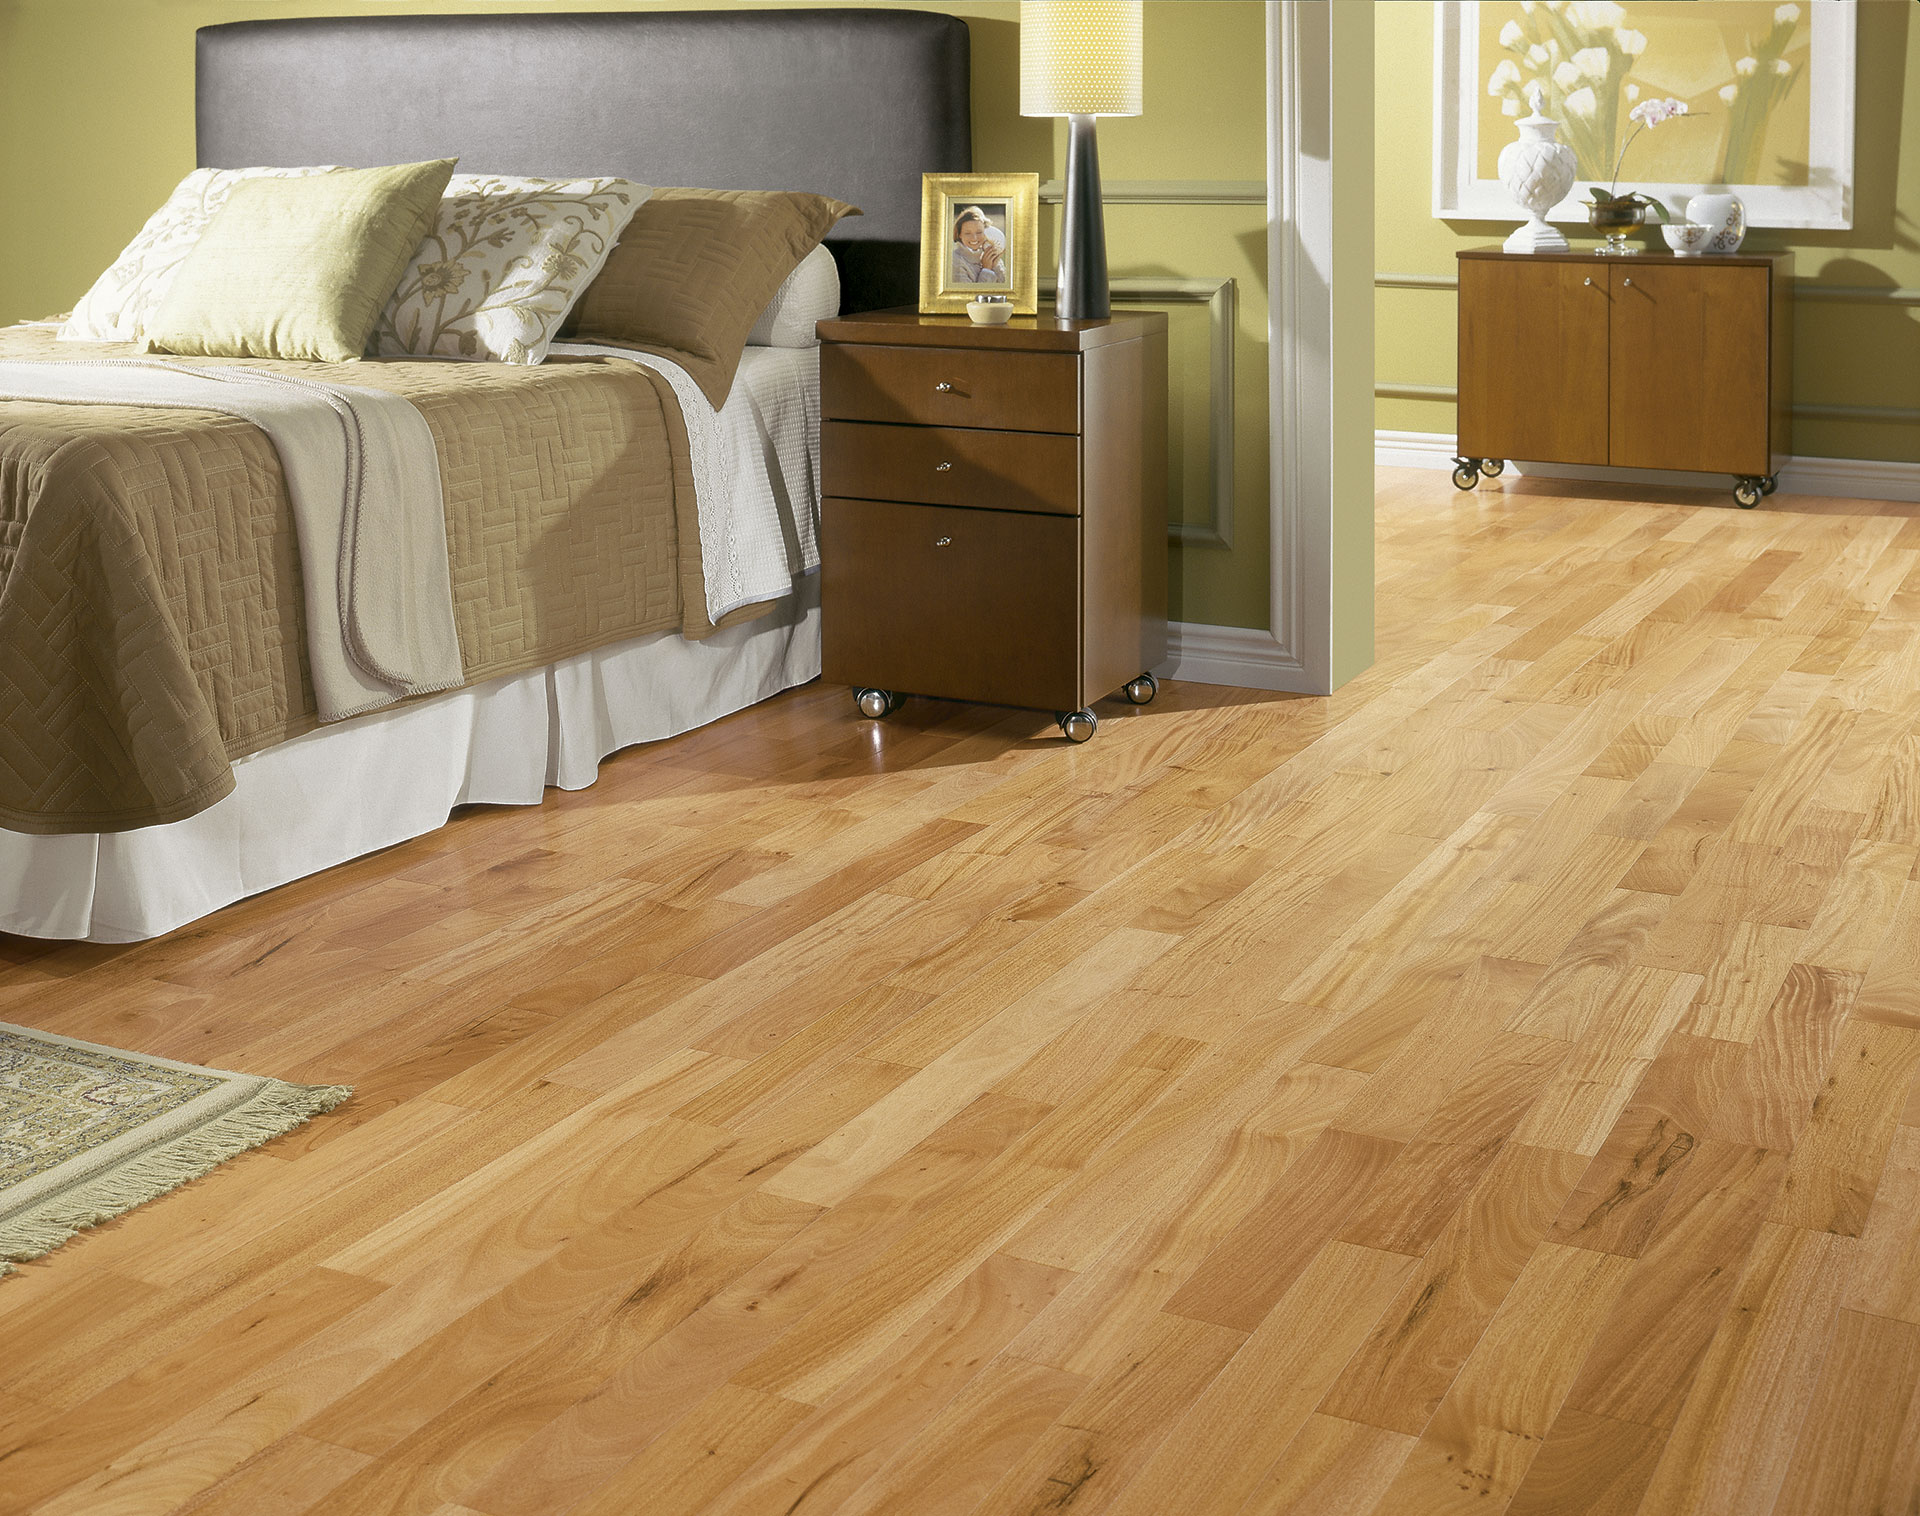 Image of: engineered hardwood floors room